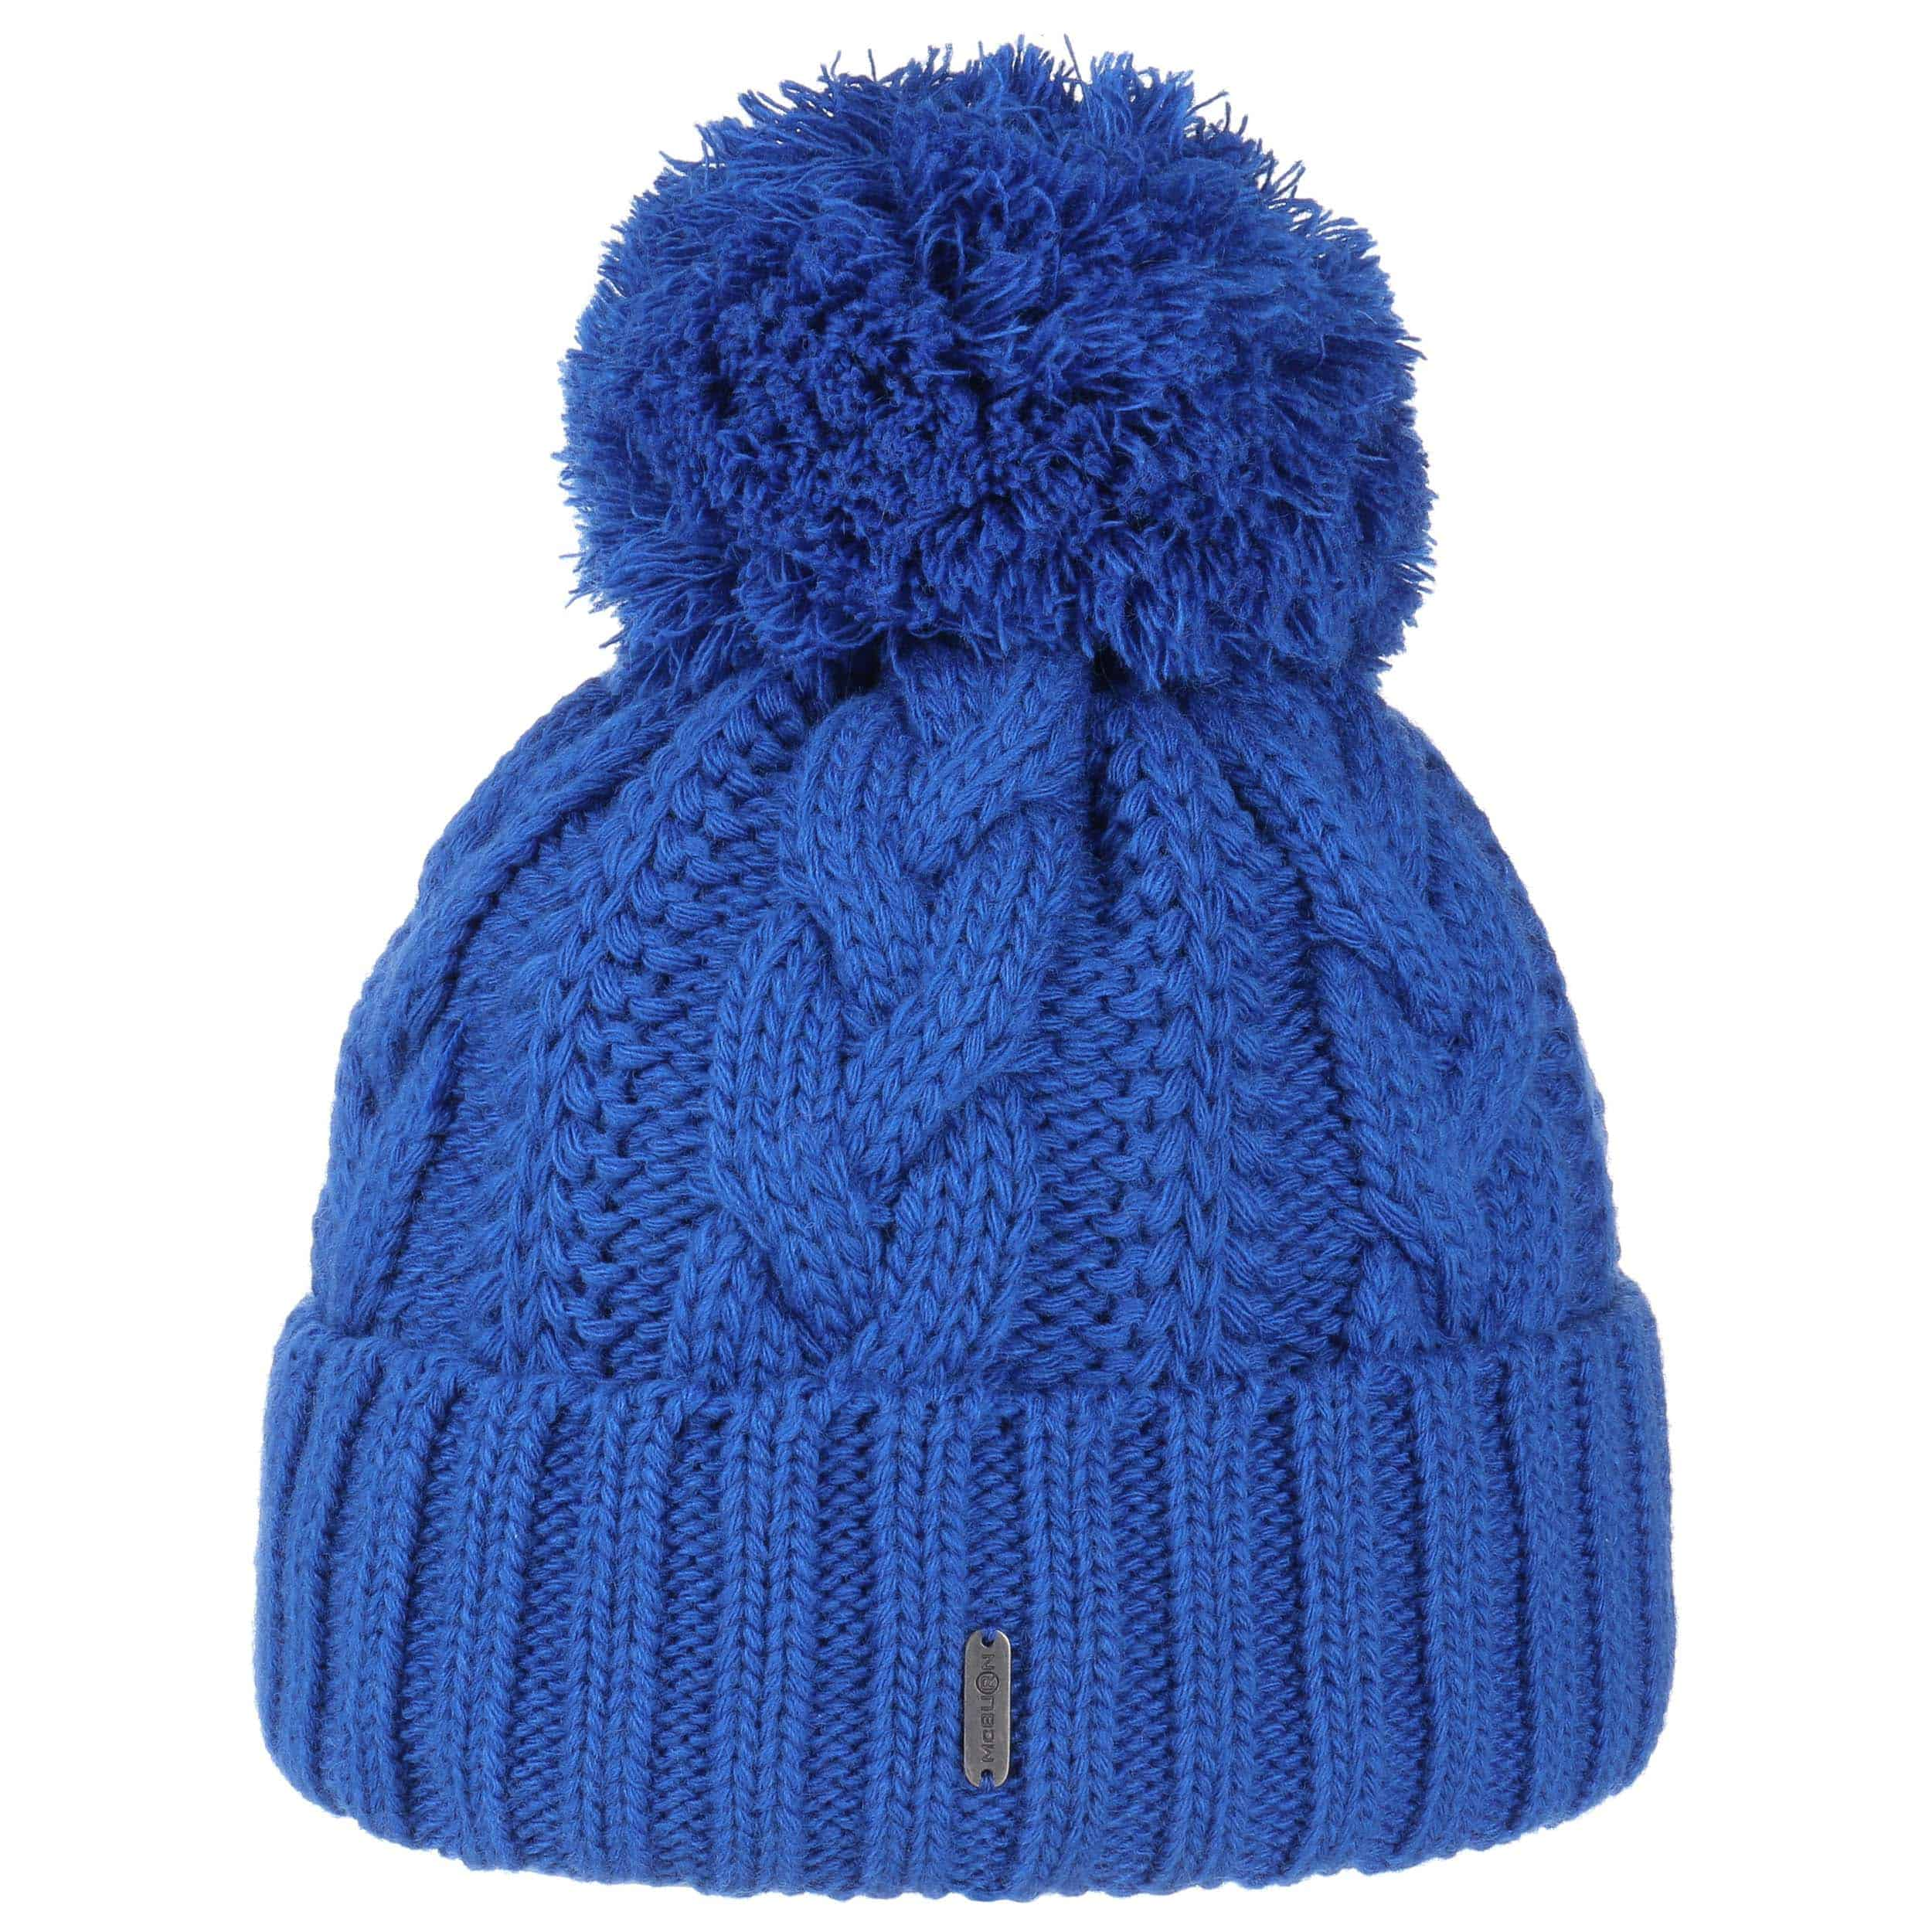 ... Giant Bobble Hat by McBURN - royal-blue 3 ... 7729c5895